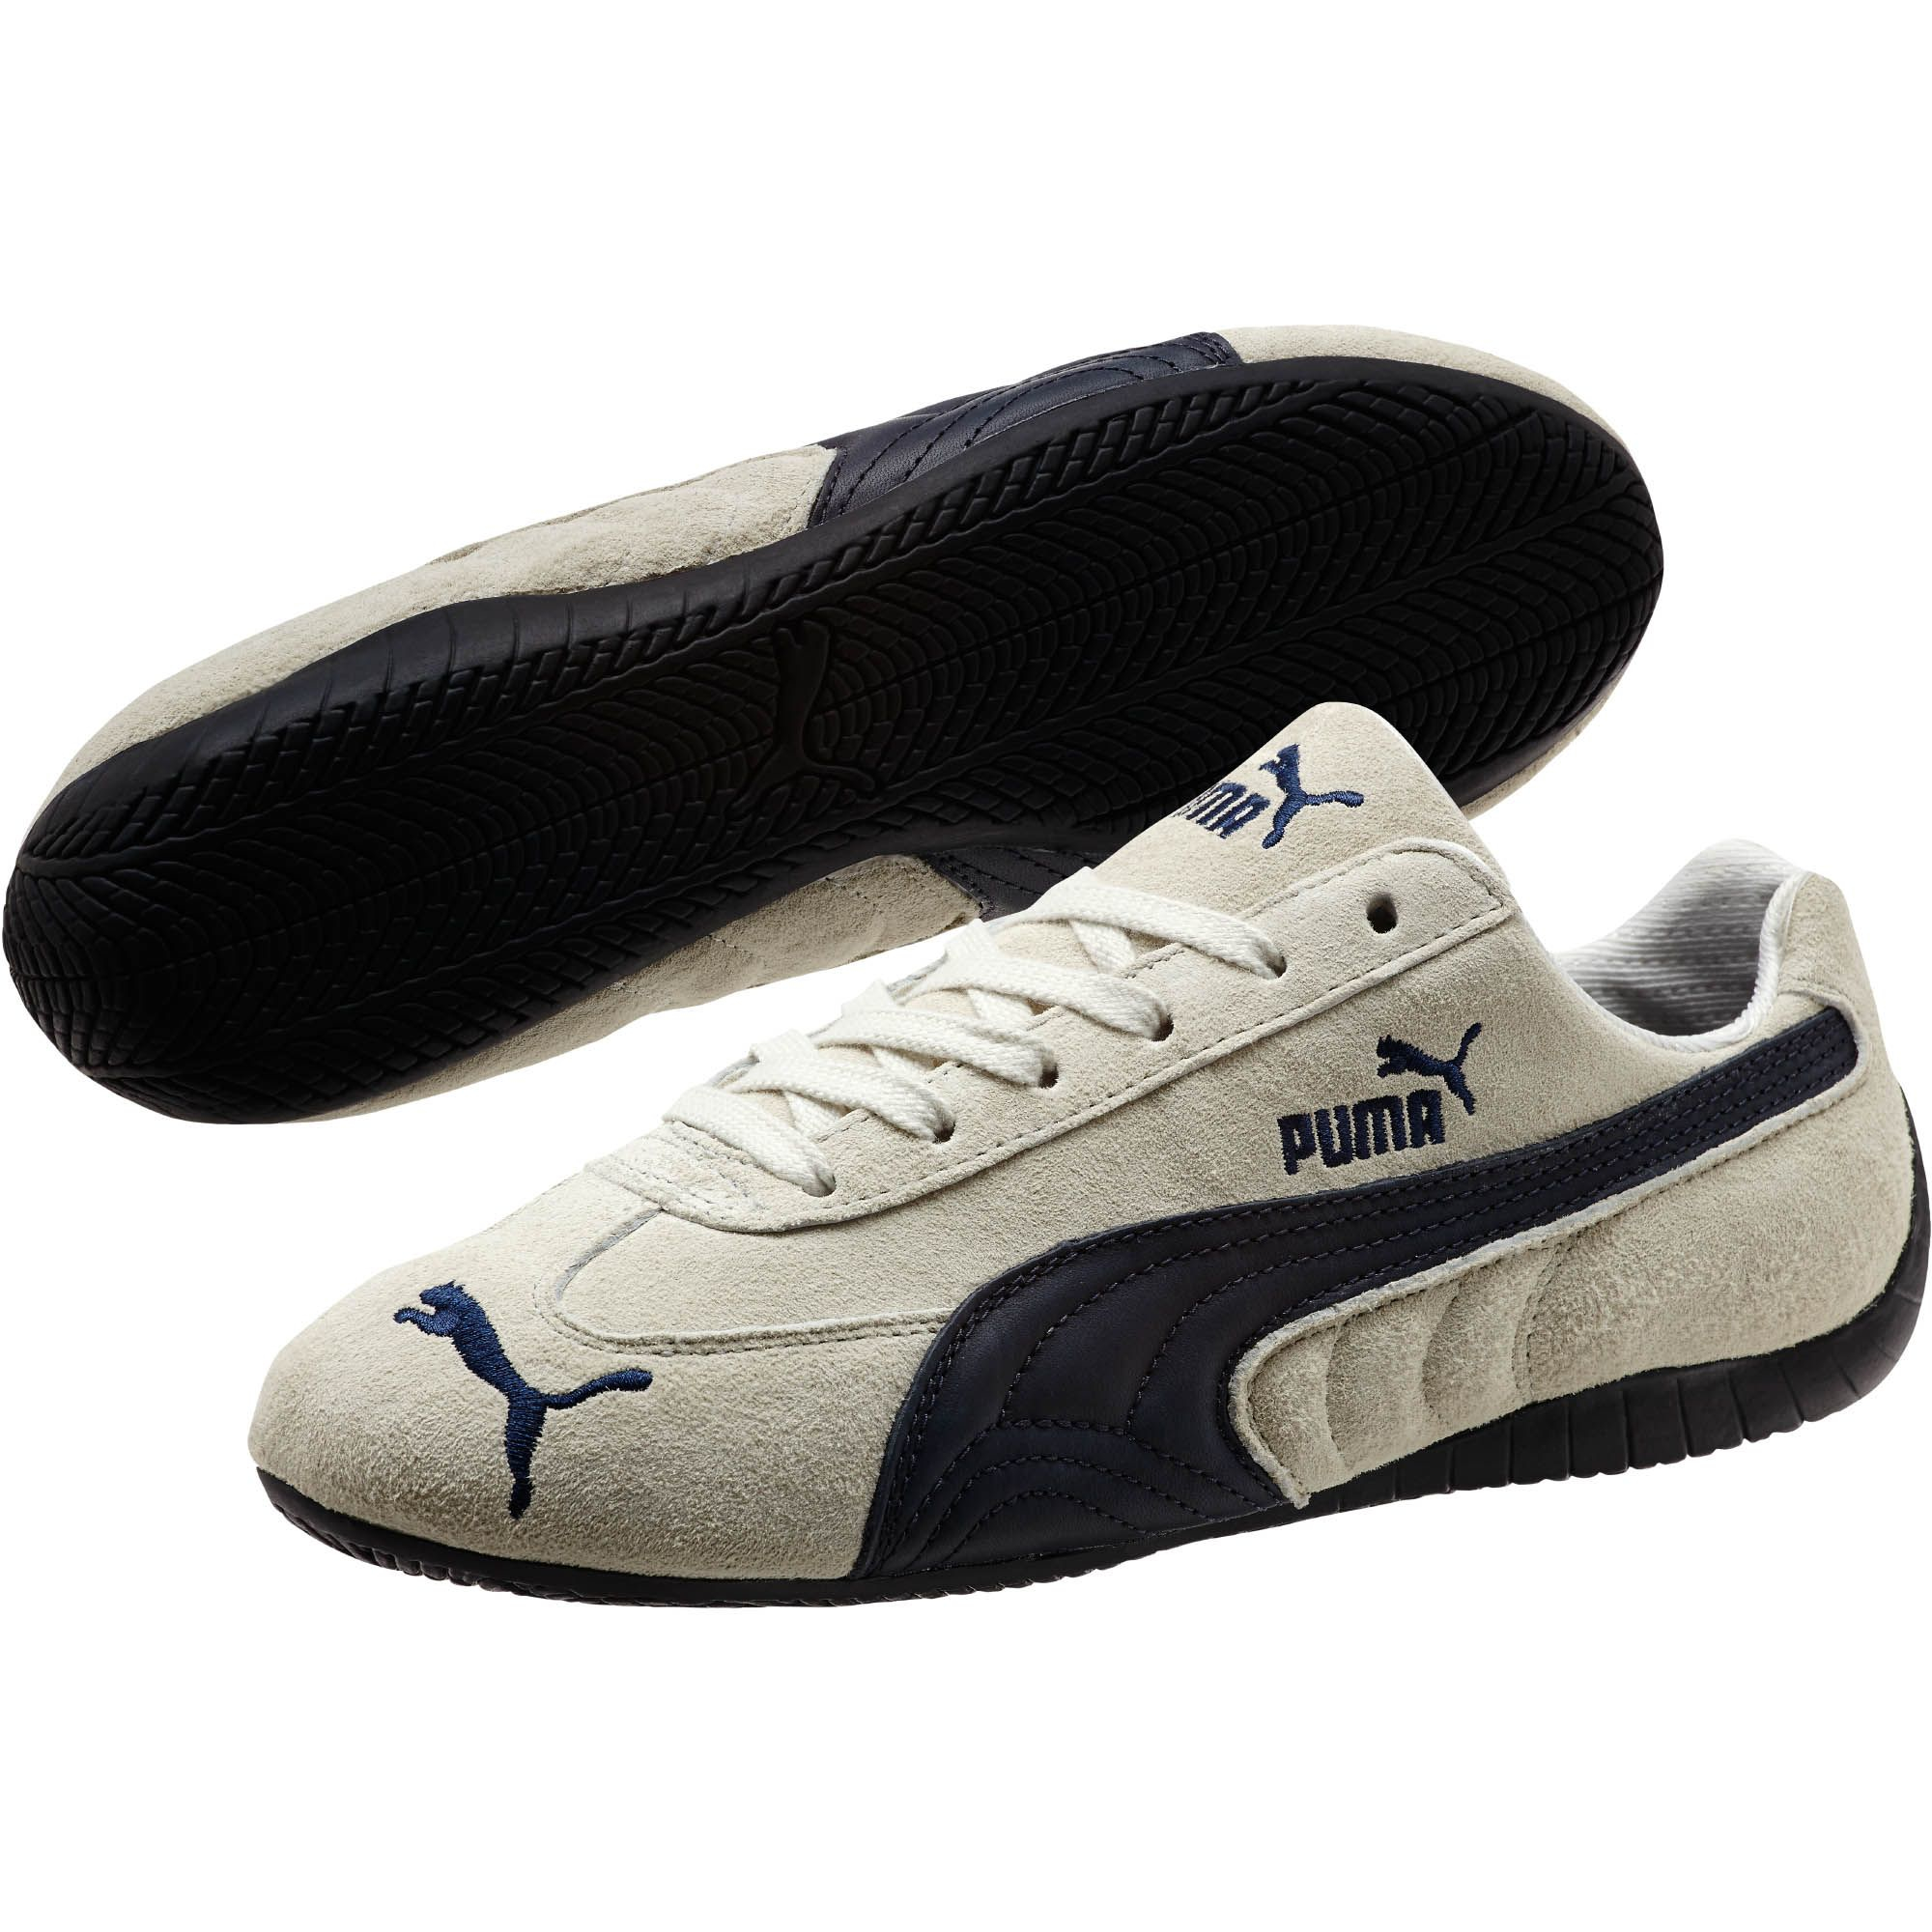 5336c0ec0a4 denmark product highlight puma speed cat sparco 168b9 9b792  coupon code  lyst puma speed cat sd shoes in metallic dedcc 40c66